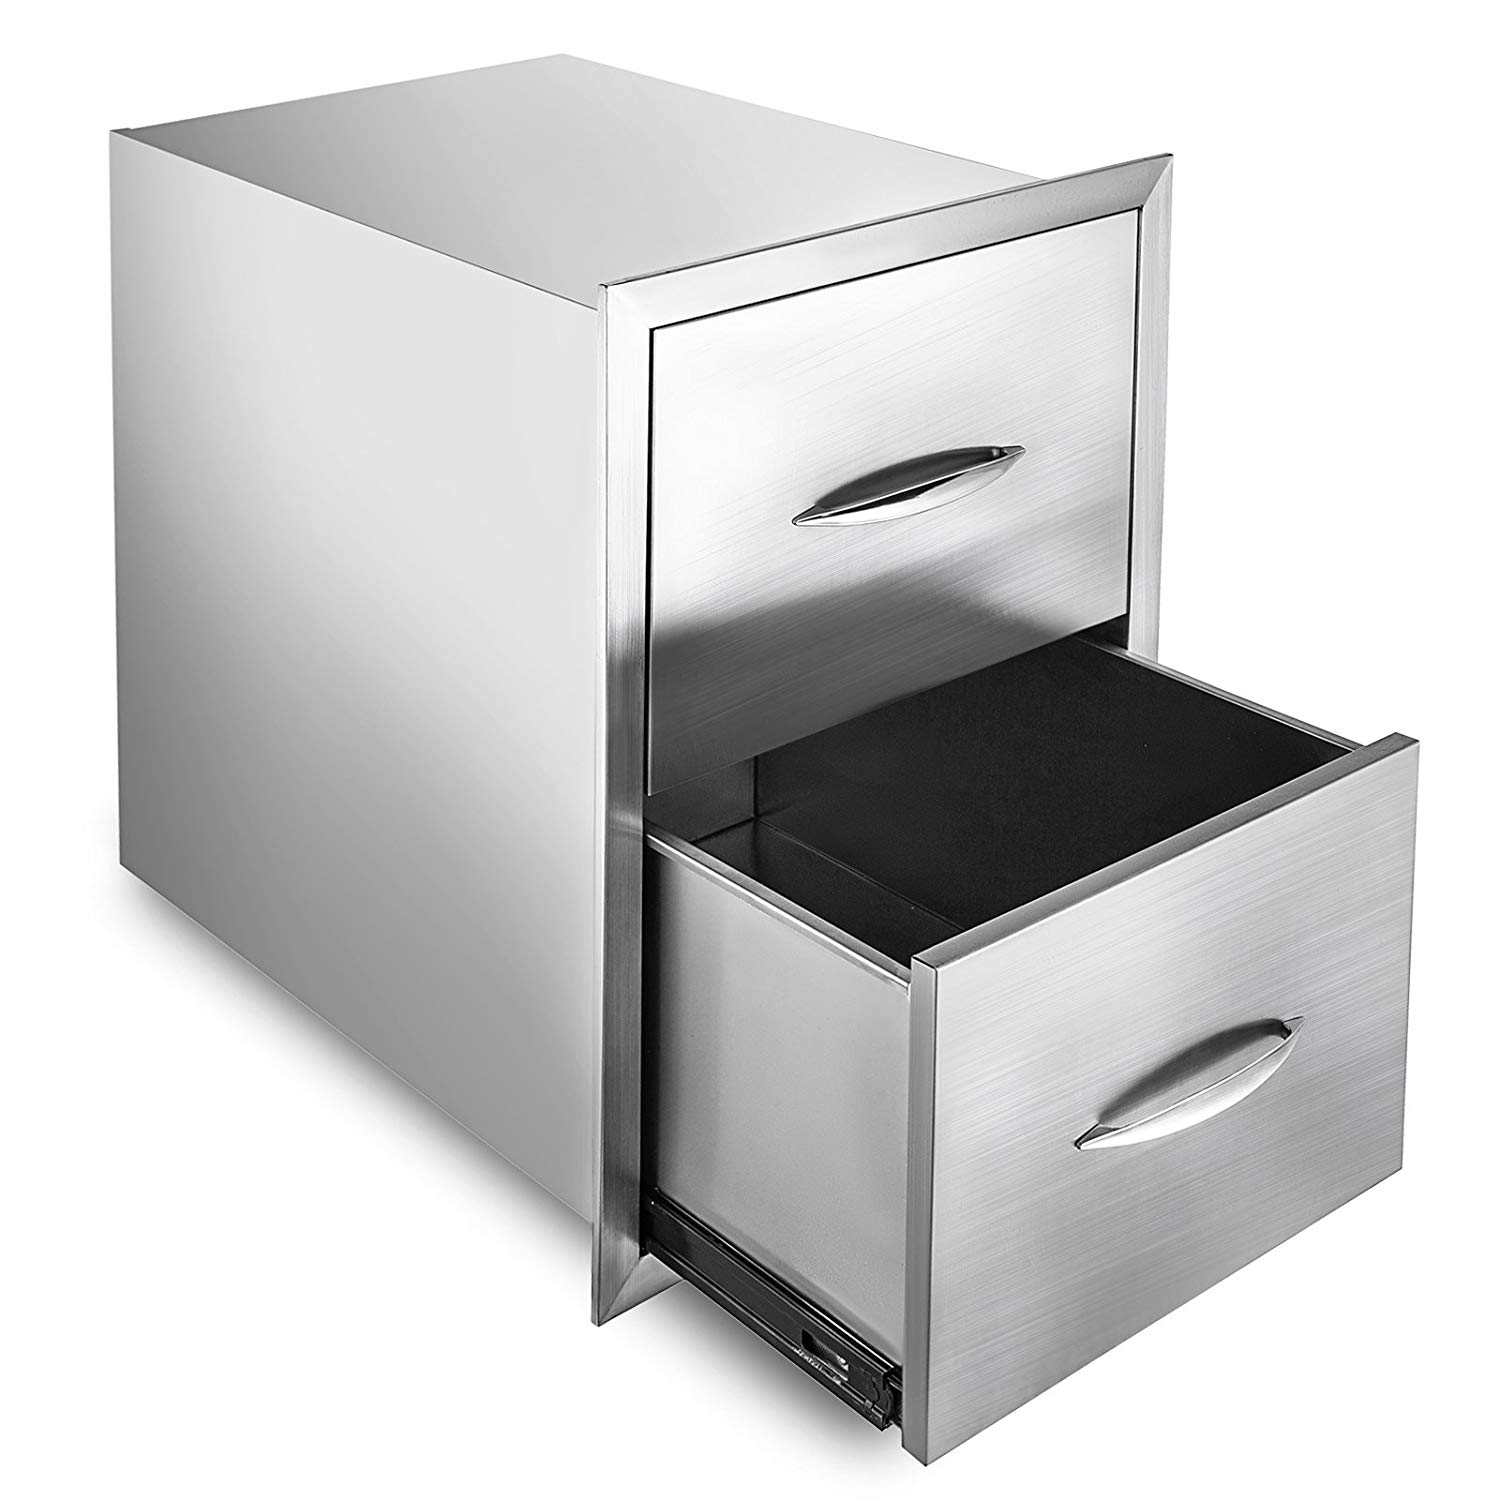 "Happybuy Outdoor kitchen drawer 18""x15"" Stainless steel BBQ Island Drawer storage with Chrome Handle Double Access Drawer Flush Mount Sliver Double Access Drawer (Outdoor kitchen Drawer 24""x18"")"